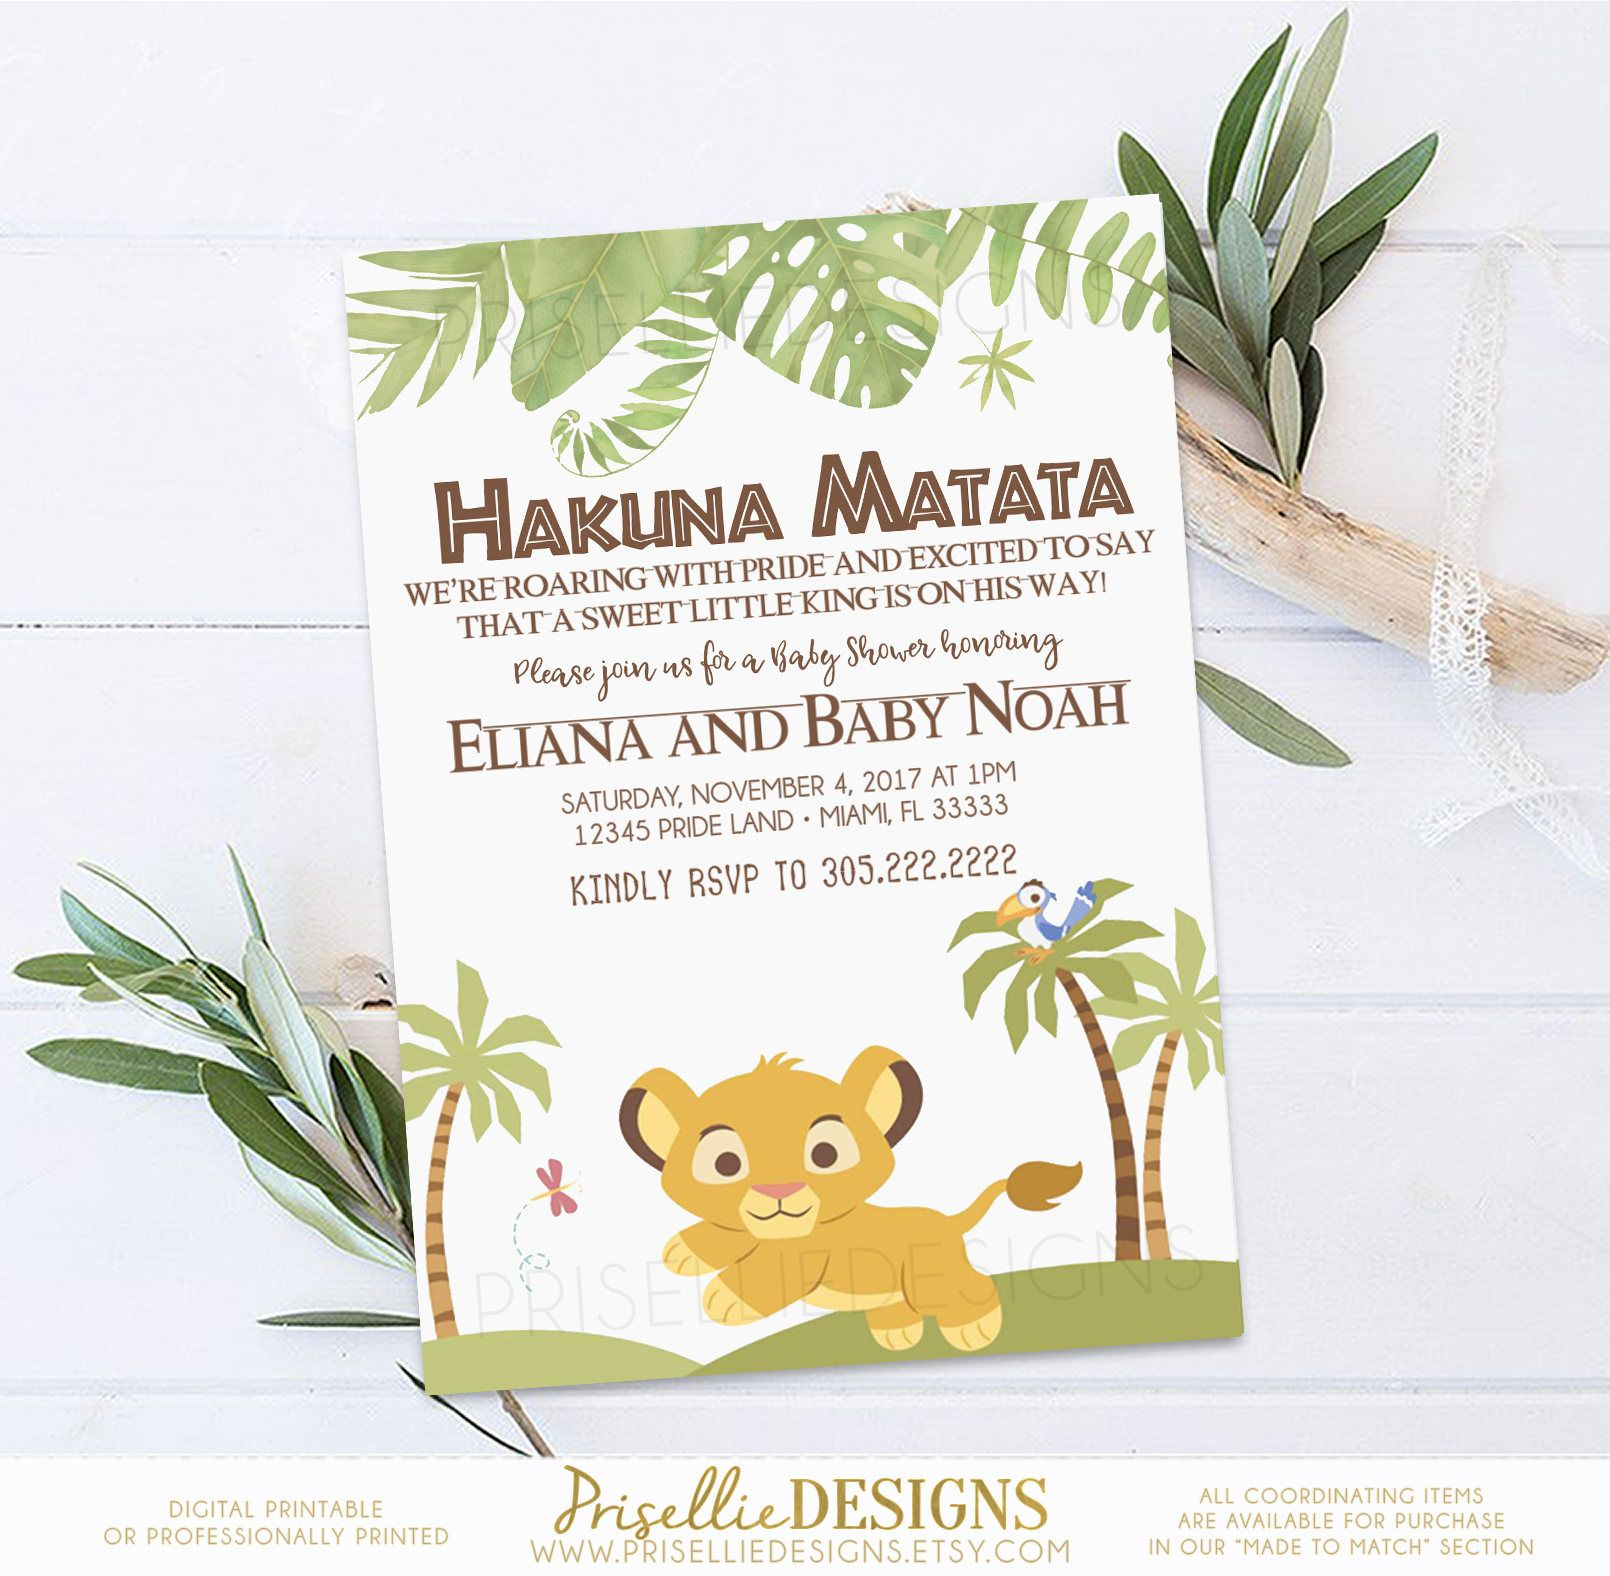 Simba Baby Shower Invitation, Lion King Baby Shower Invitation, The ...